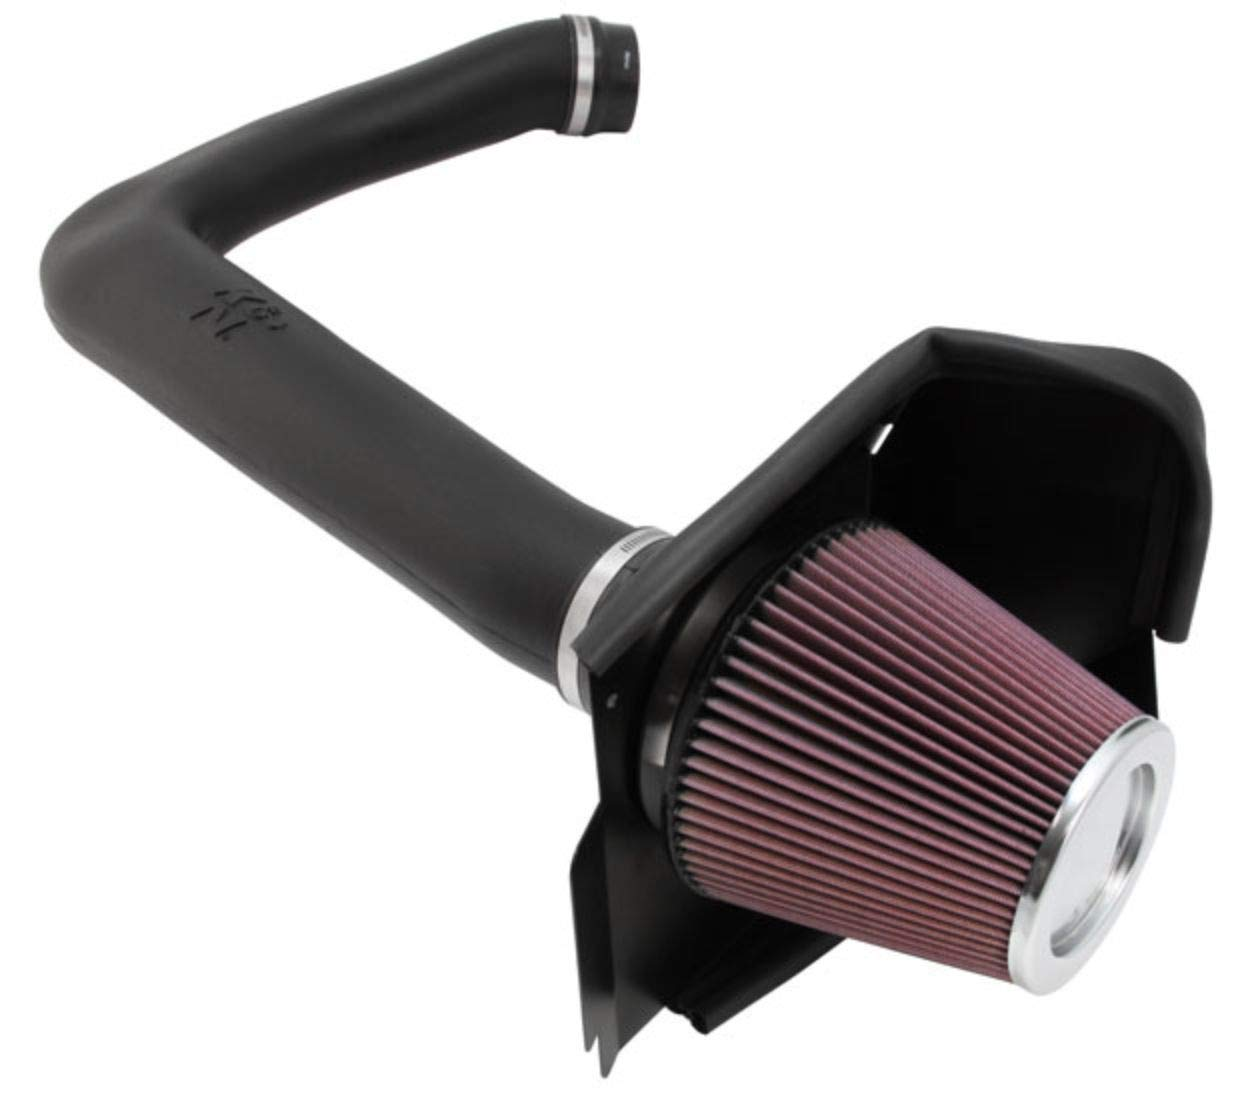 K&N Cold Air Intake Kit with Washable Air Filter:  2011-2019 Dodge/Chrysler (Challenger, Charger, 300) 3.6L V6 Black HDPE Tube with Red Oiled Filter, 63-1564 by K&N